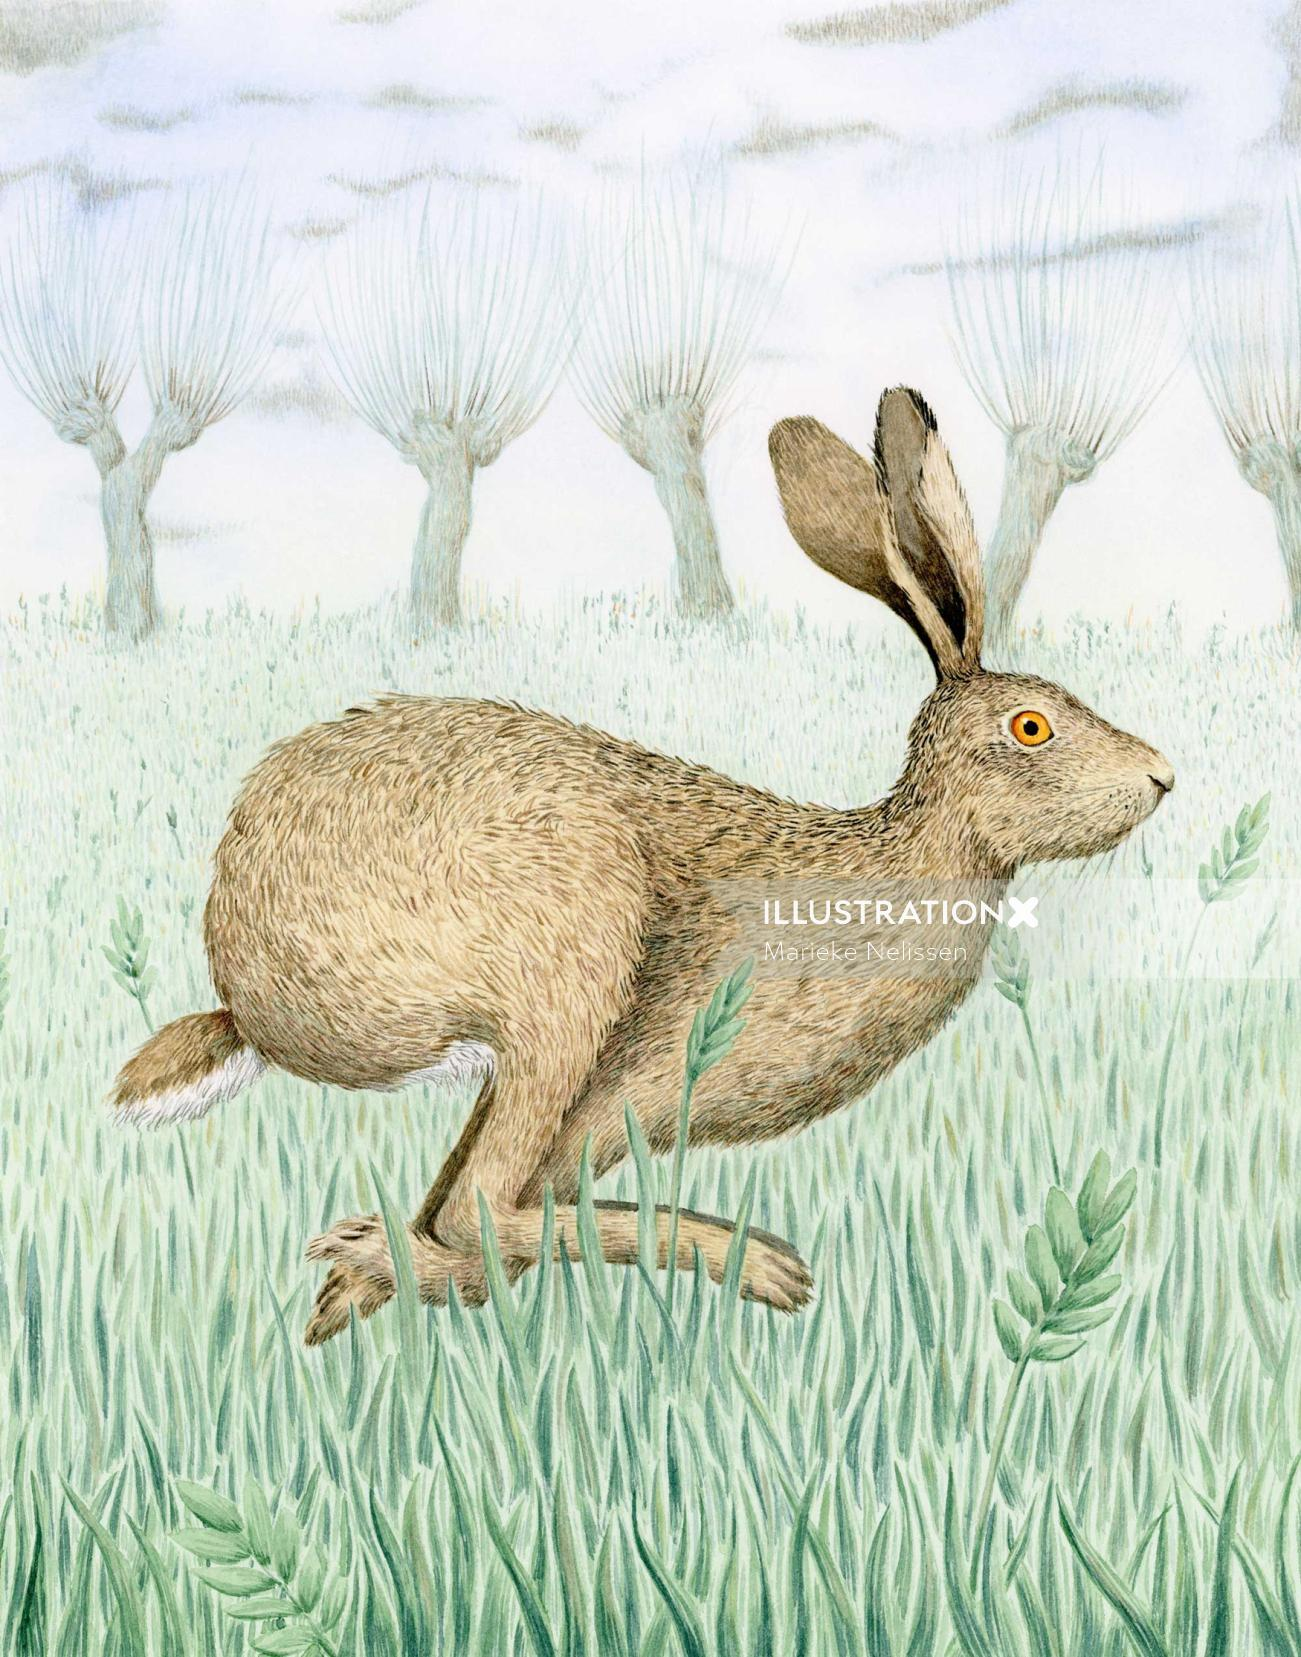 Gouache illustration of Hare in a field